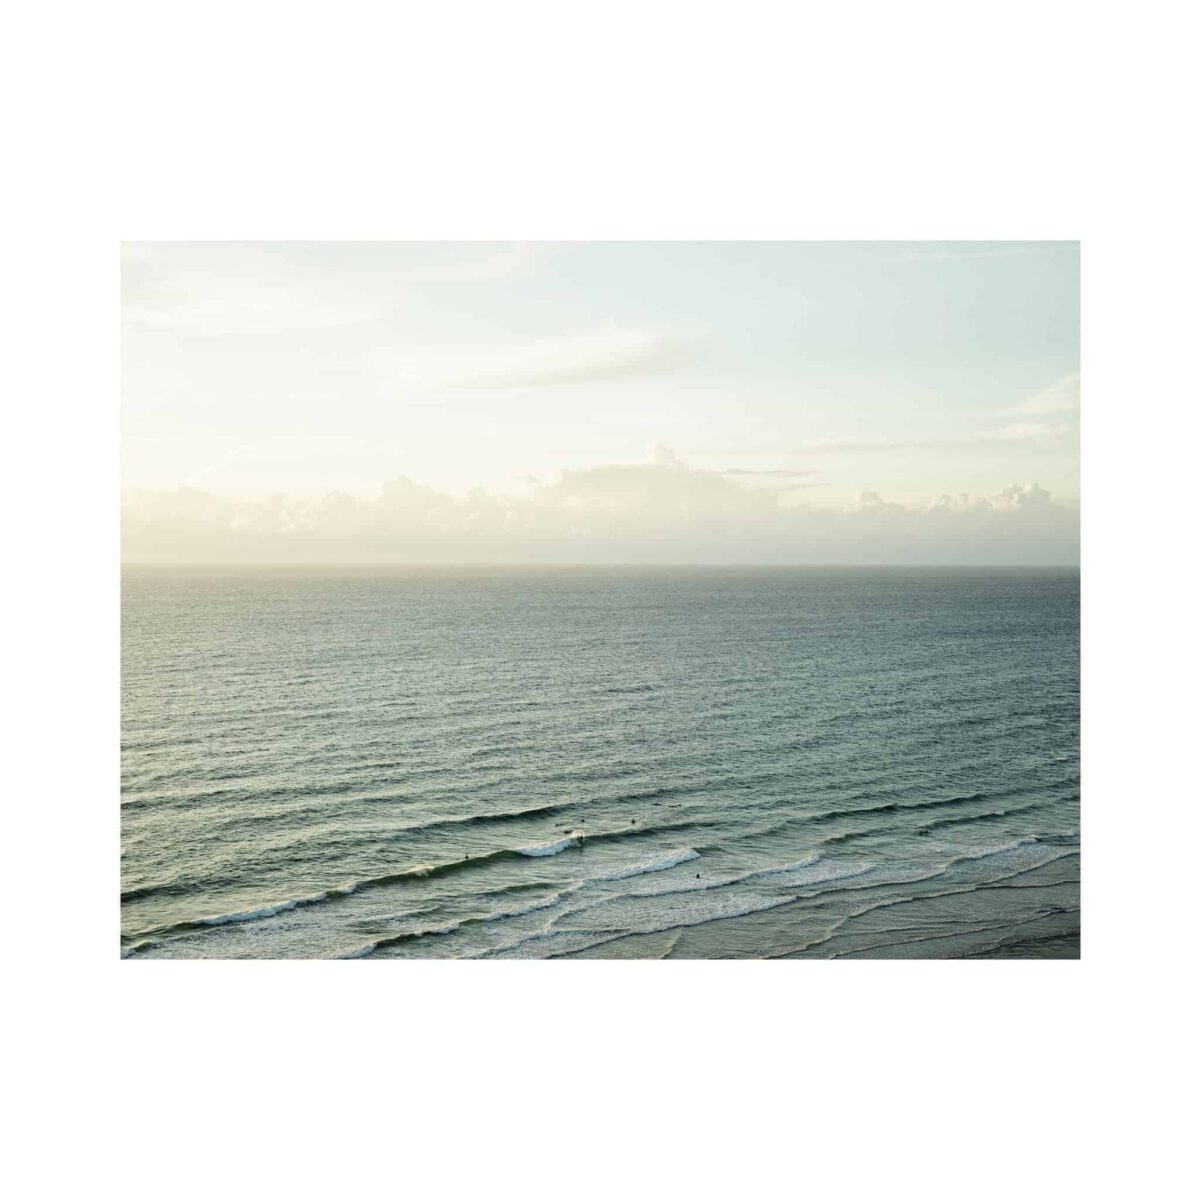 porthtowan-ii-a1-print-only-tom-shaw-another-country_dc810376-4a33-4b31-b397-2c9fa800c4e5.jpg